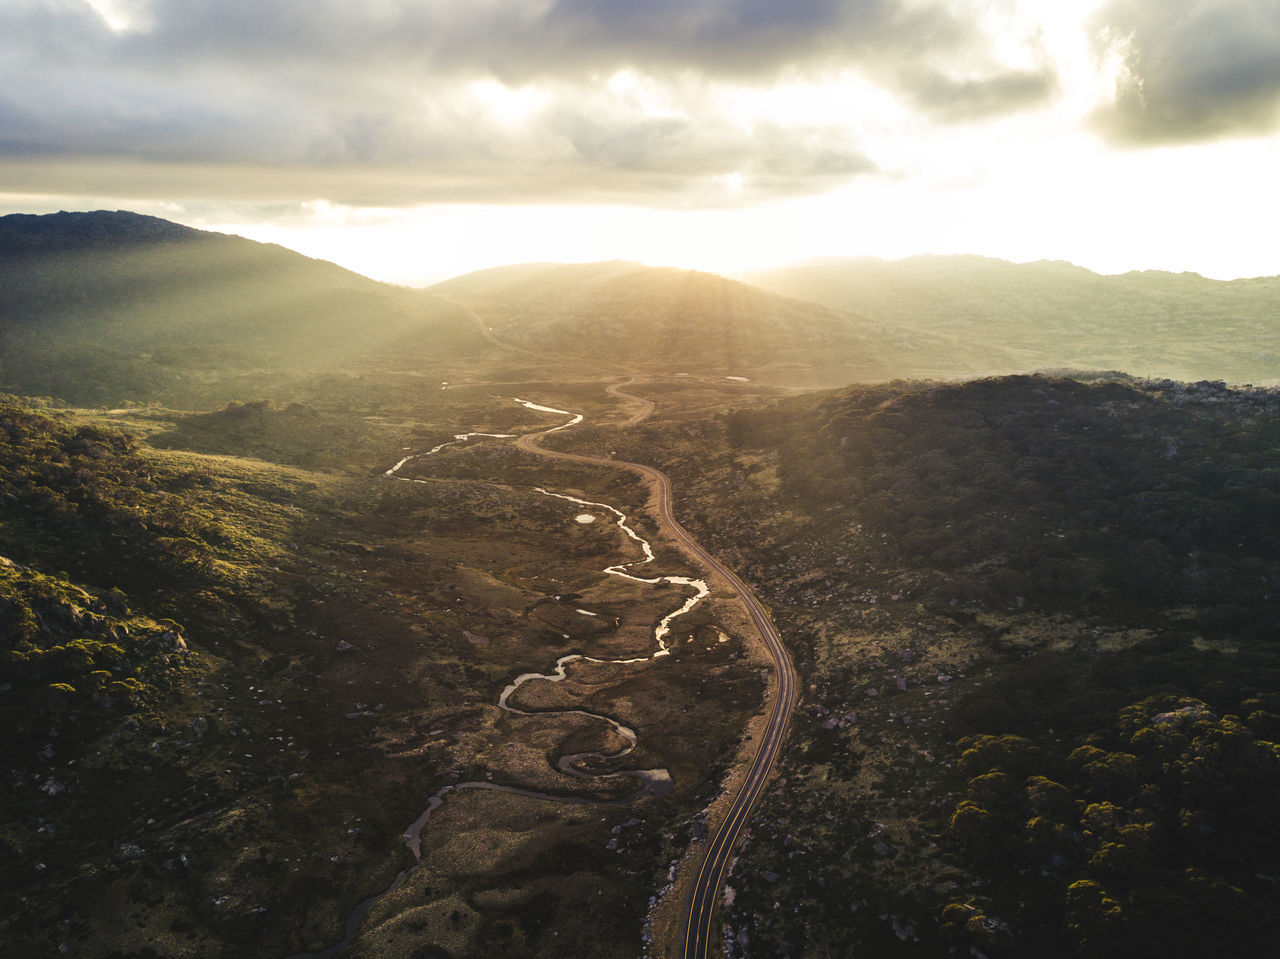 @itchban / www.itchban.com Aerial View Beauty In Nature Cloud - Sky Day Landscape Light Rays Mountain Mountain Range Mountain Road Mountains Nature No People Outdoors Scenics Sky Tranquility Winding Road The Great Outdoors - 2017 EyeEm Awards